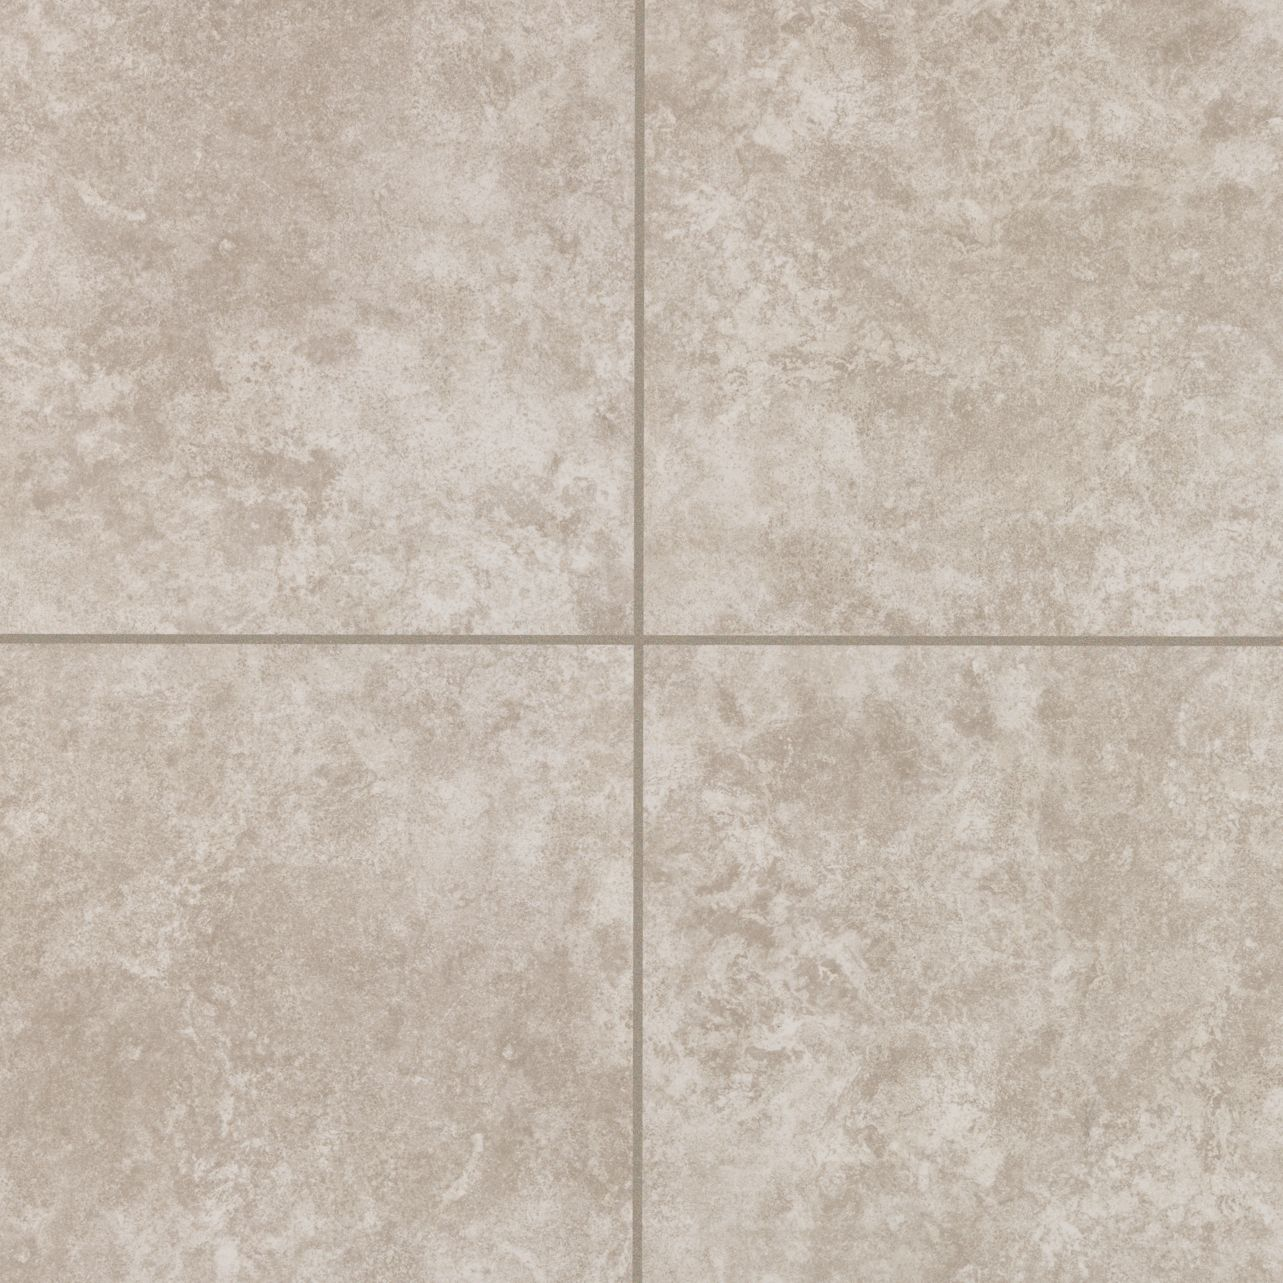 CeramicPorcelainTile AndelaWall T810-AN35 Grey